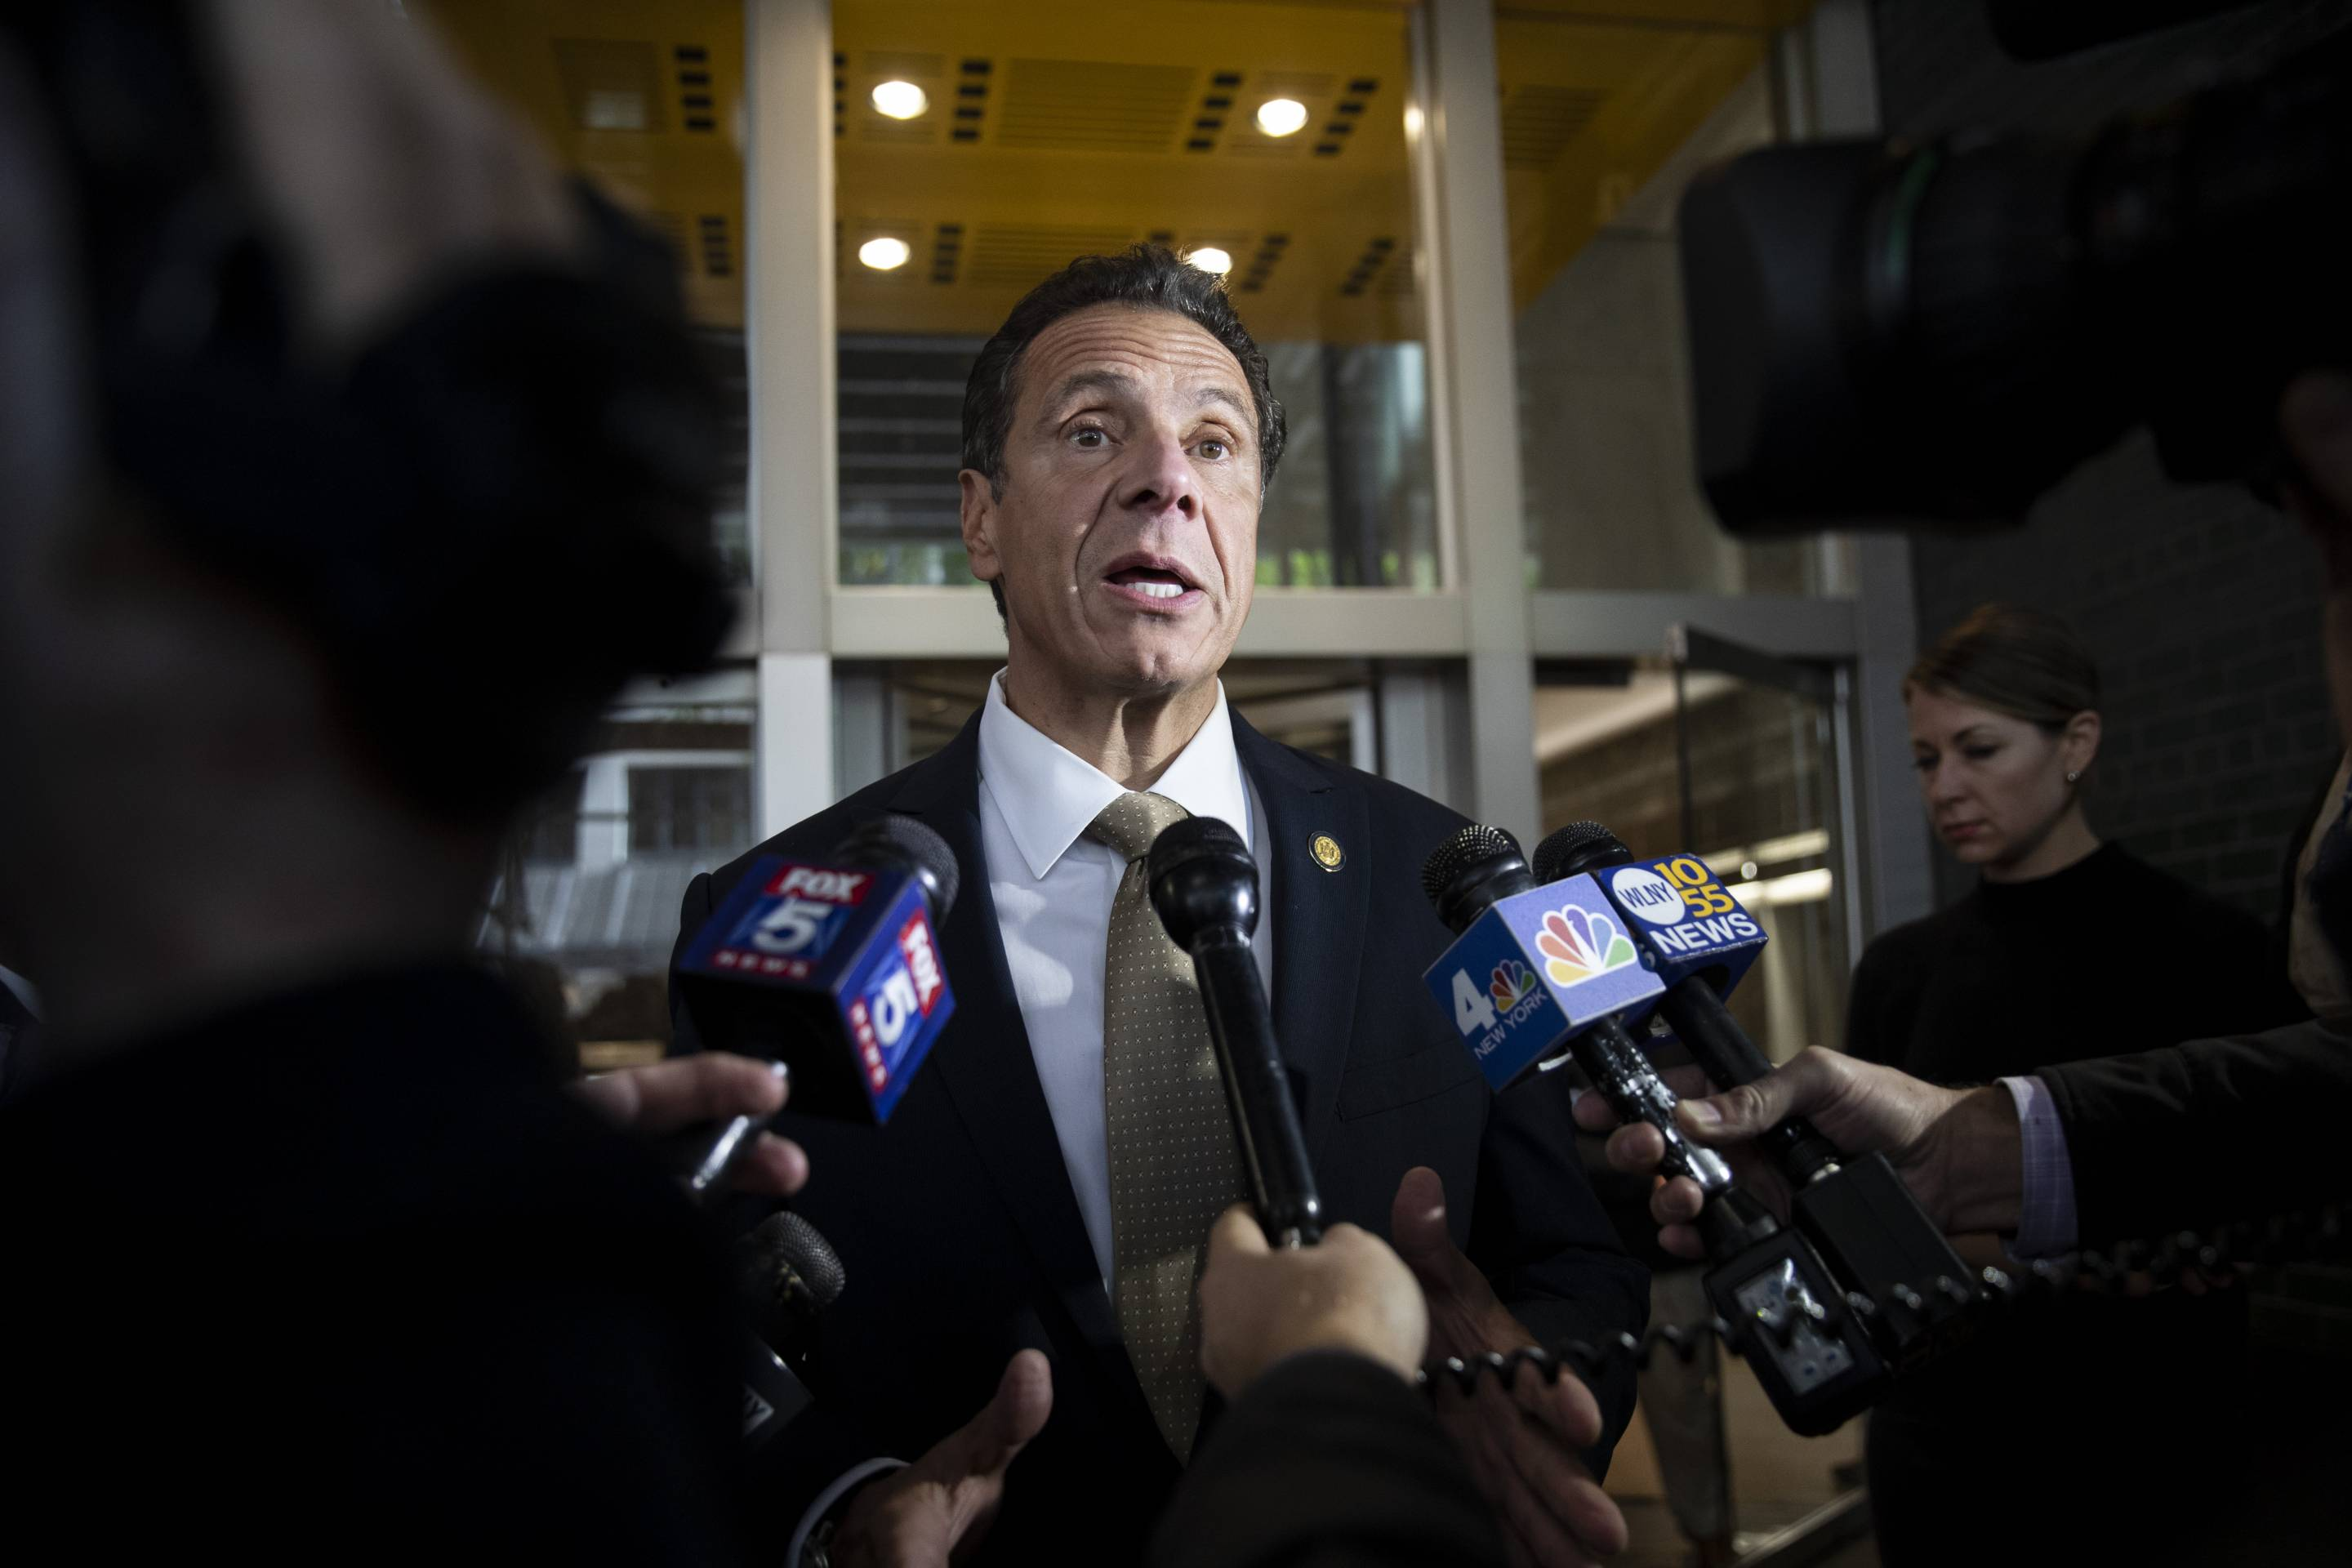 New York Governor Andrew Cuomo Calls for Legalizing Marijuana Among His Priorities